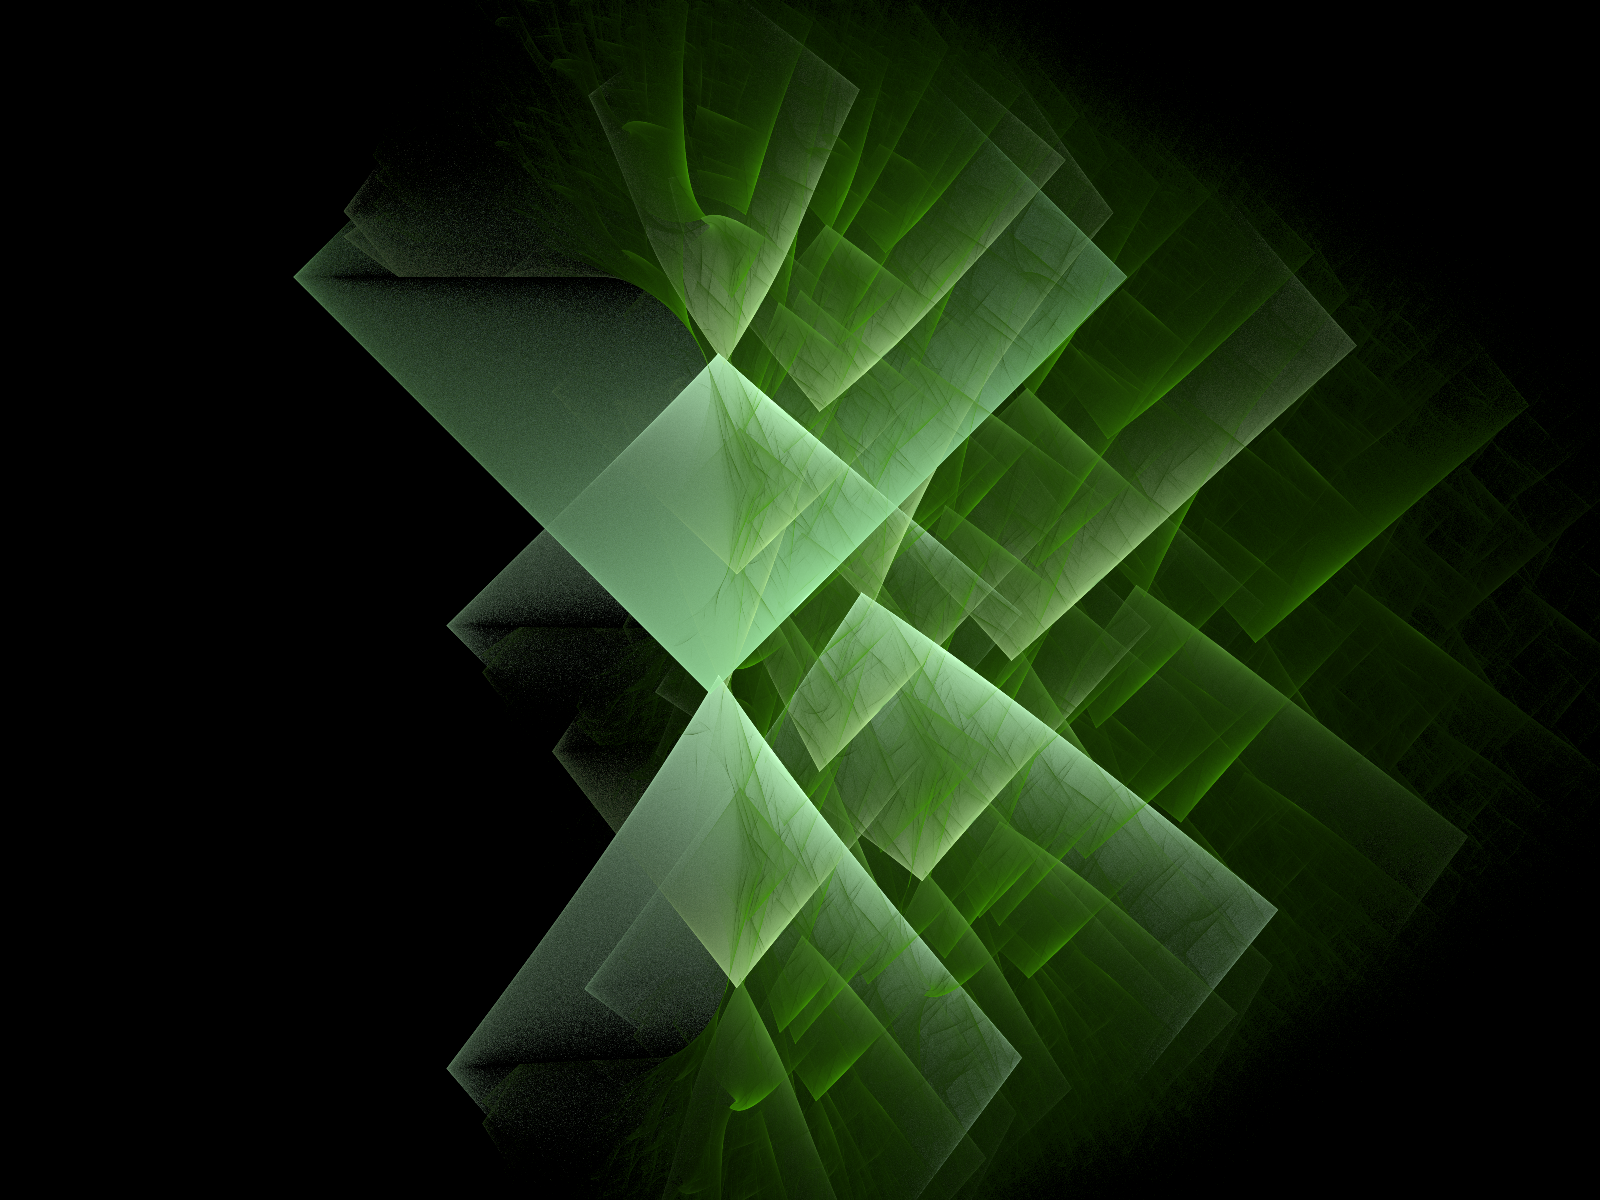 Black And Green Background wallpaper 262266 1600x1200